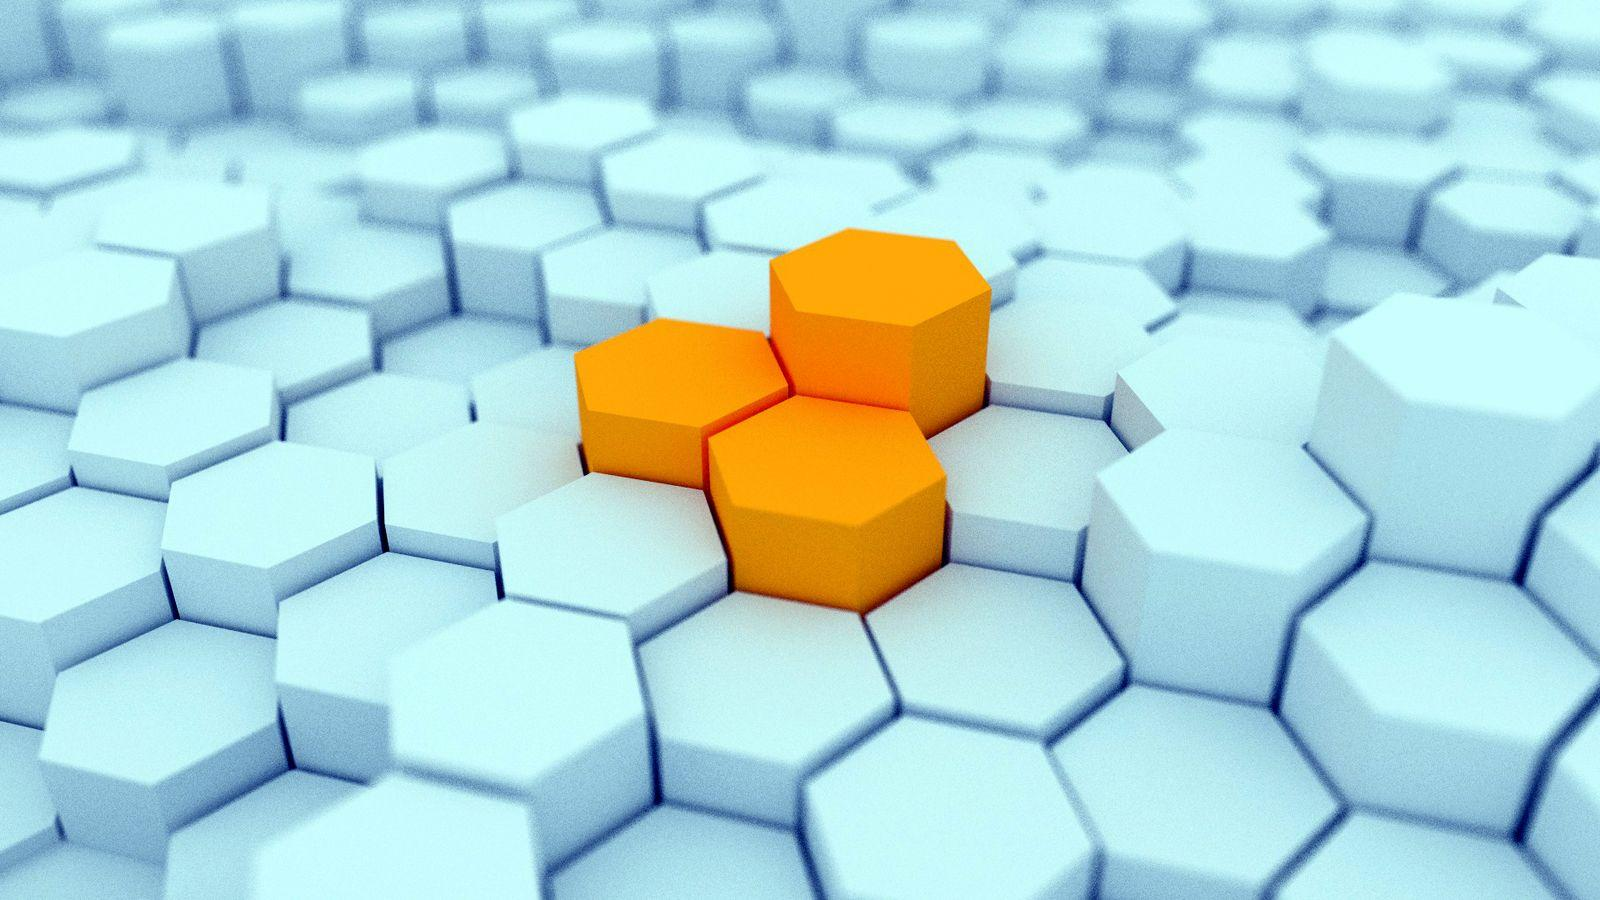 3D Hexagon Blocks HD Wallpaper | 3D Logo's | Pinterest ...